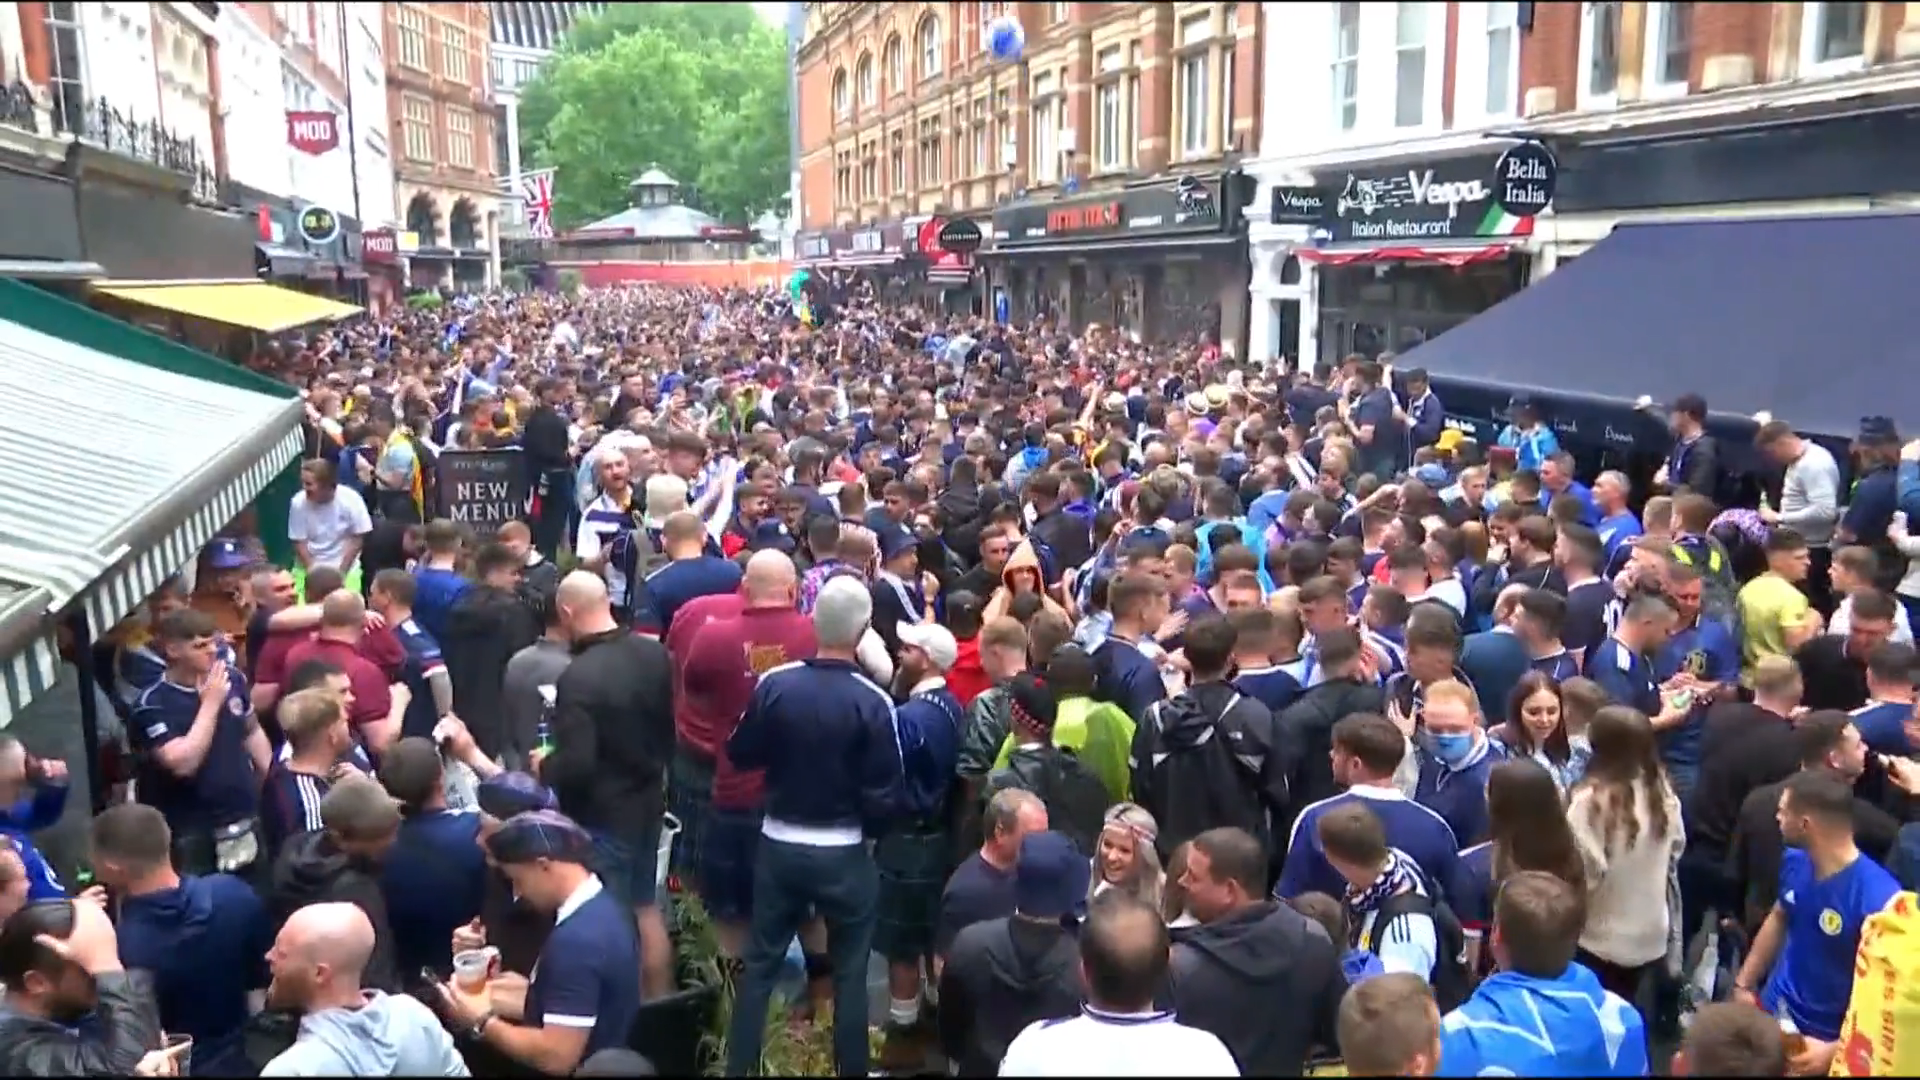 Thousands of fans gather in London ahead of England v Scotland Euro 2020 clash - channel 4